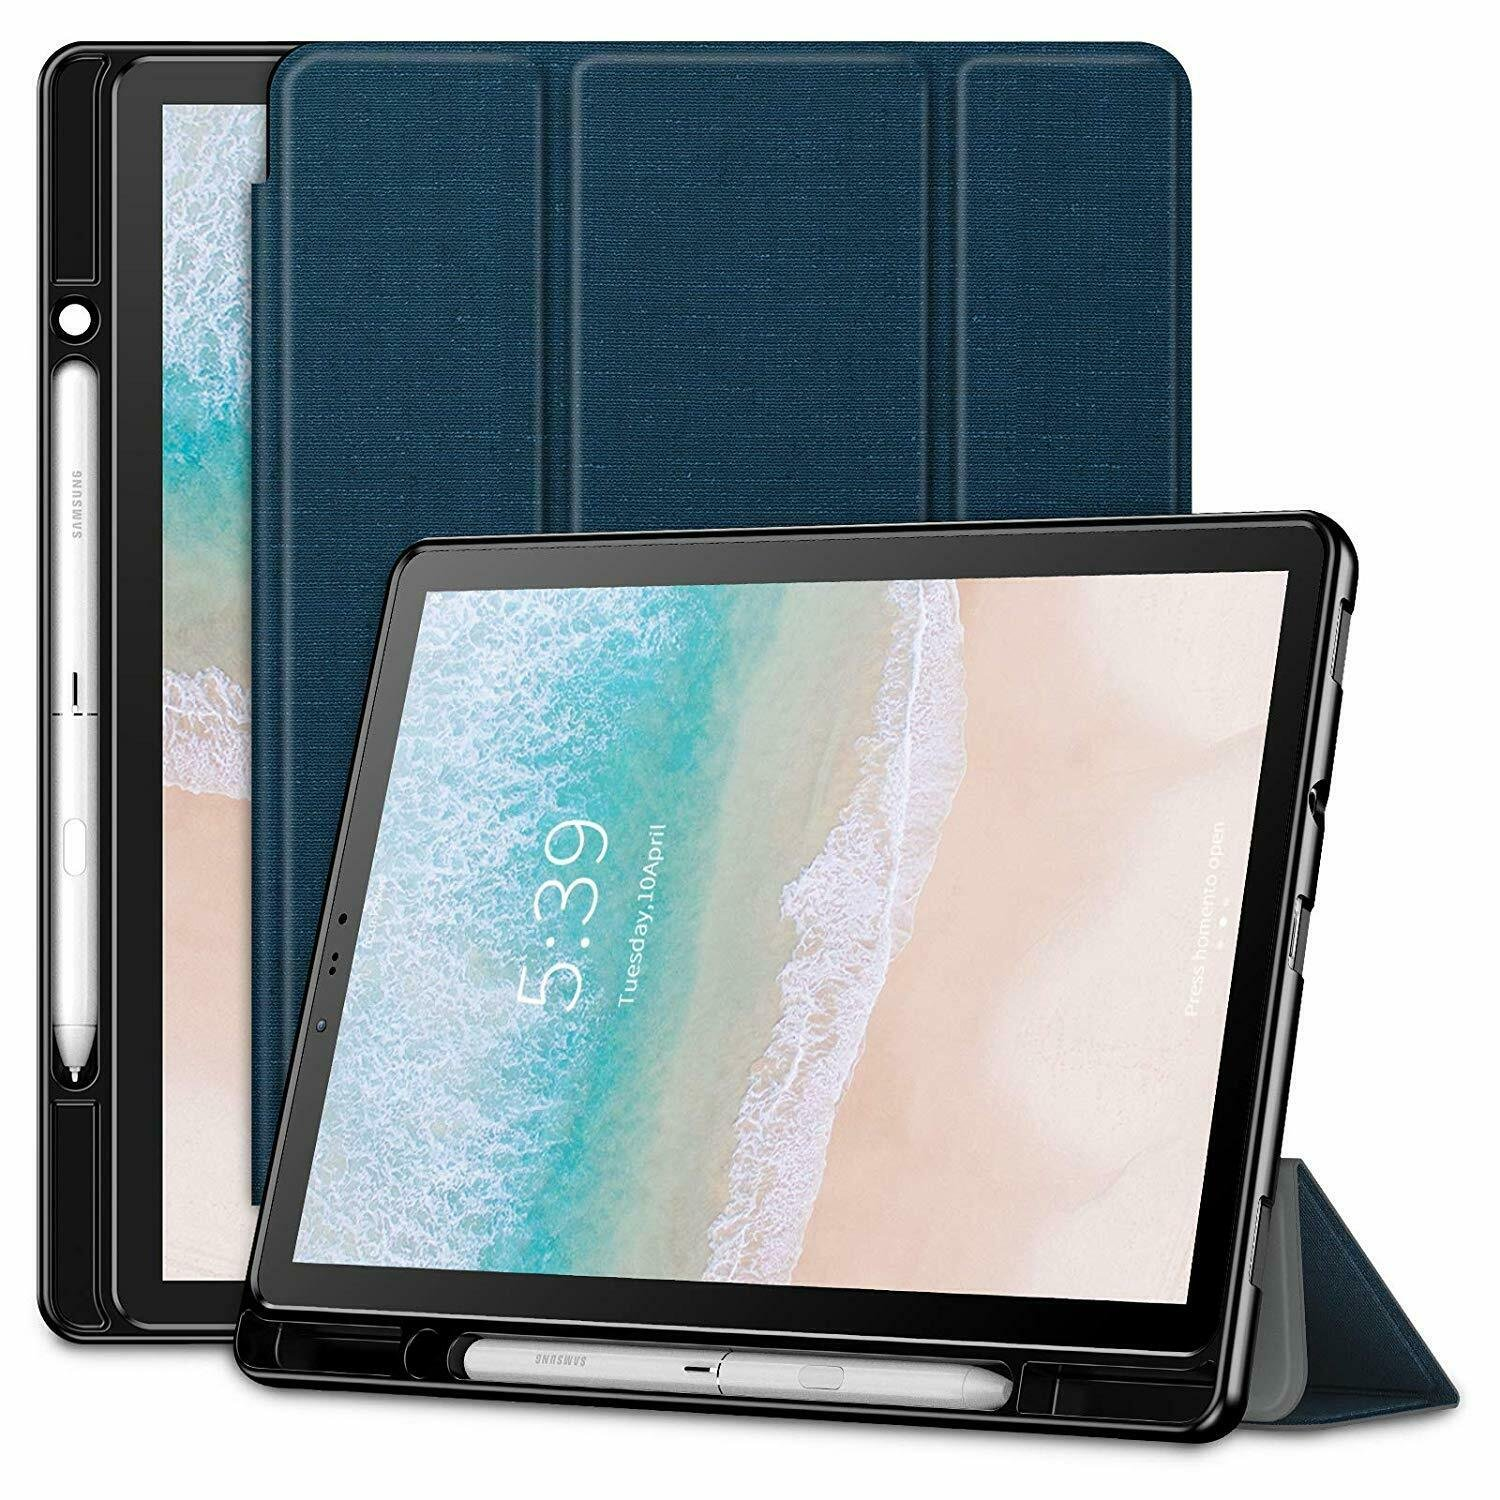 Samsung Galaxy Tab S4 Case Slim TriFold Cover Pen Holder Auto Wake Sleep  Navy